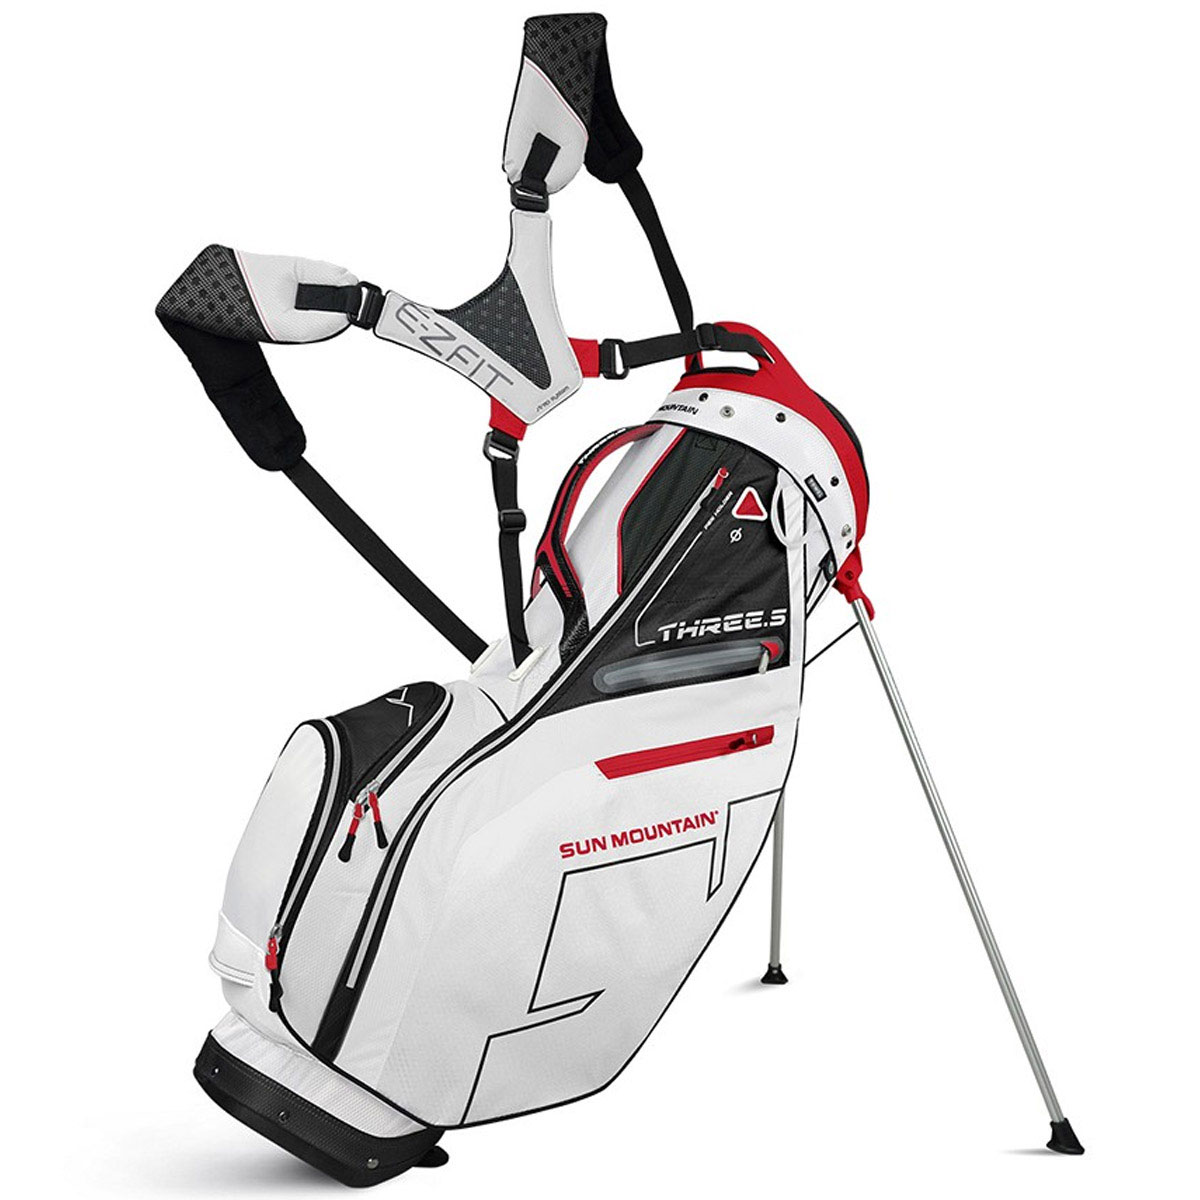 Light Stand Golf Bag: Sun Mountain 2016 Three 5 Carry Stand Lightweight Golf Bag